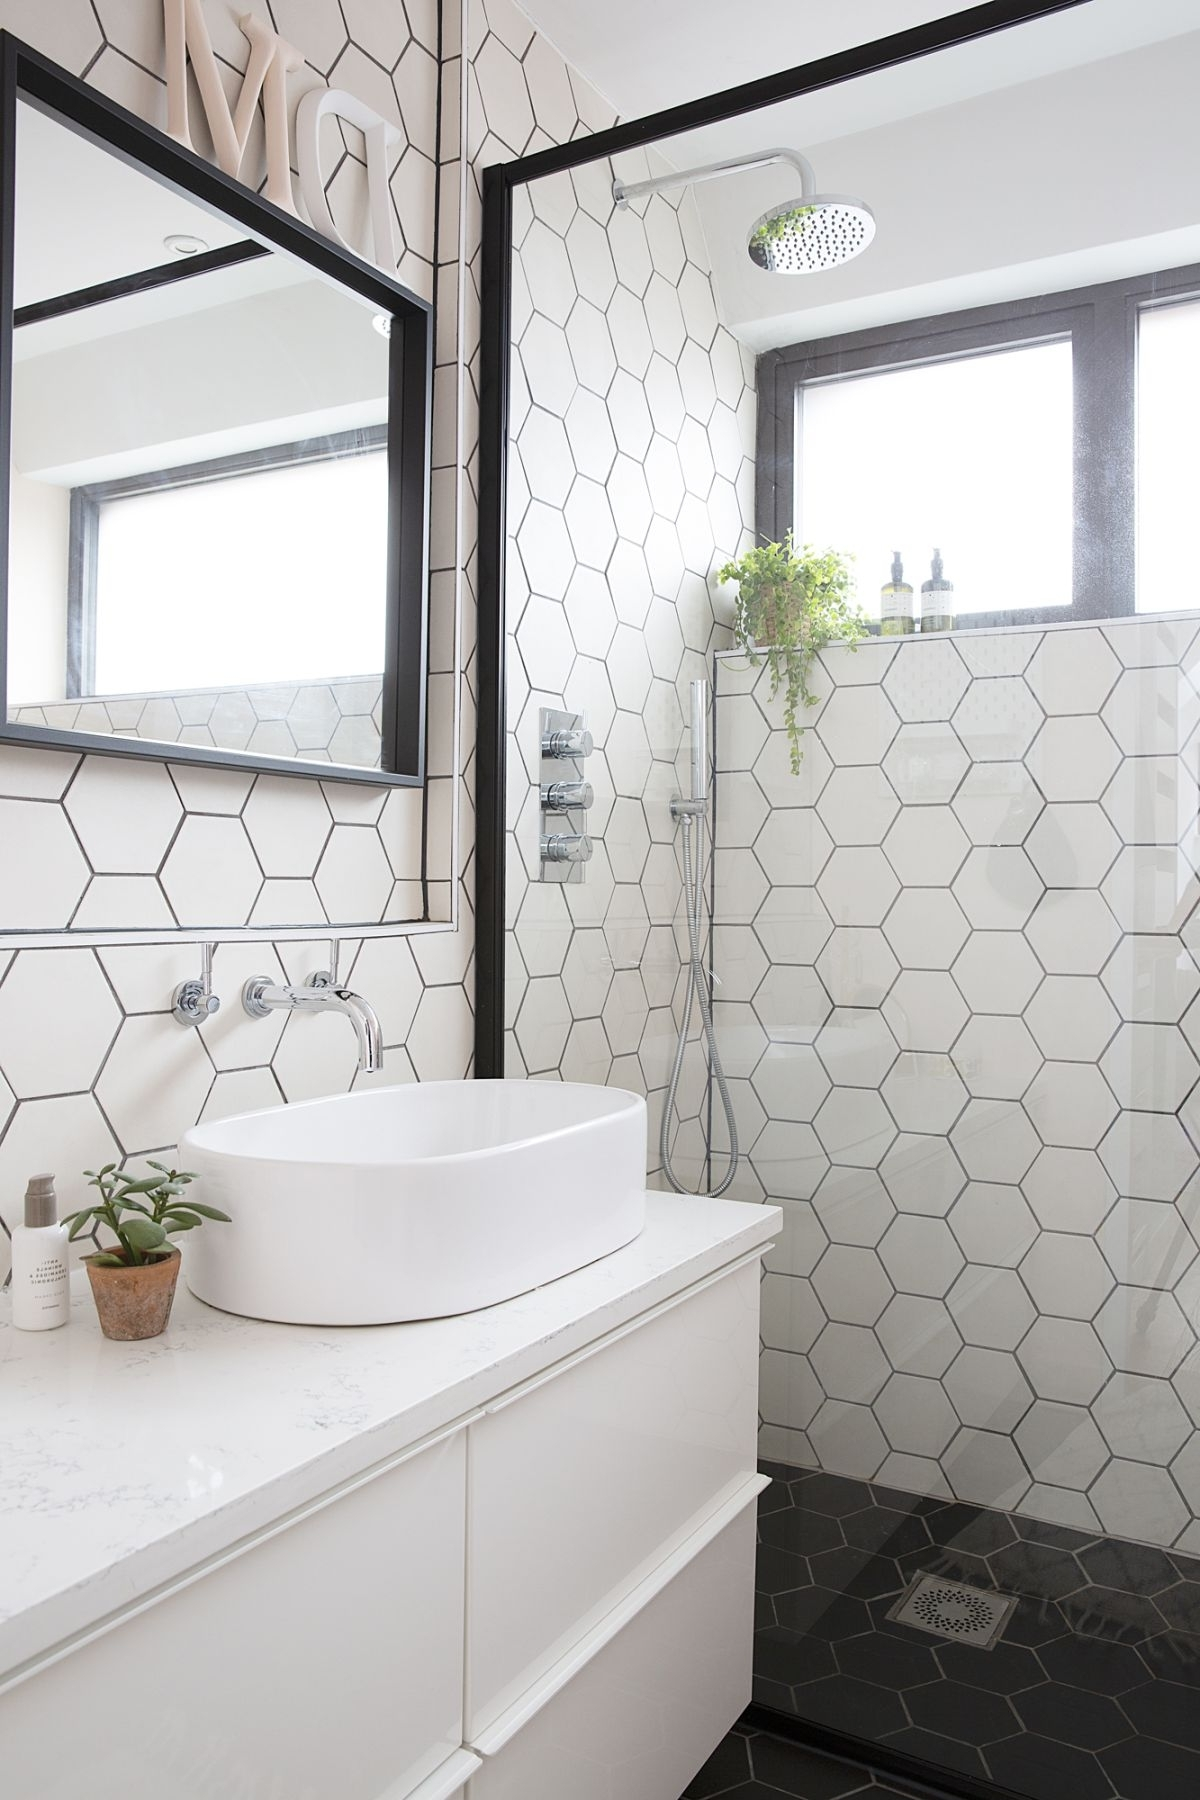 How To Choose Tiles For A Small Bathroom | Real Homes Metro Tiles Small Bathroom